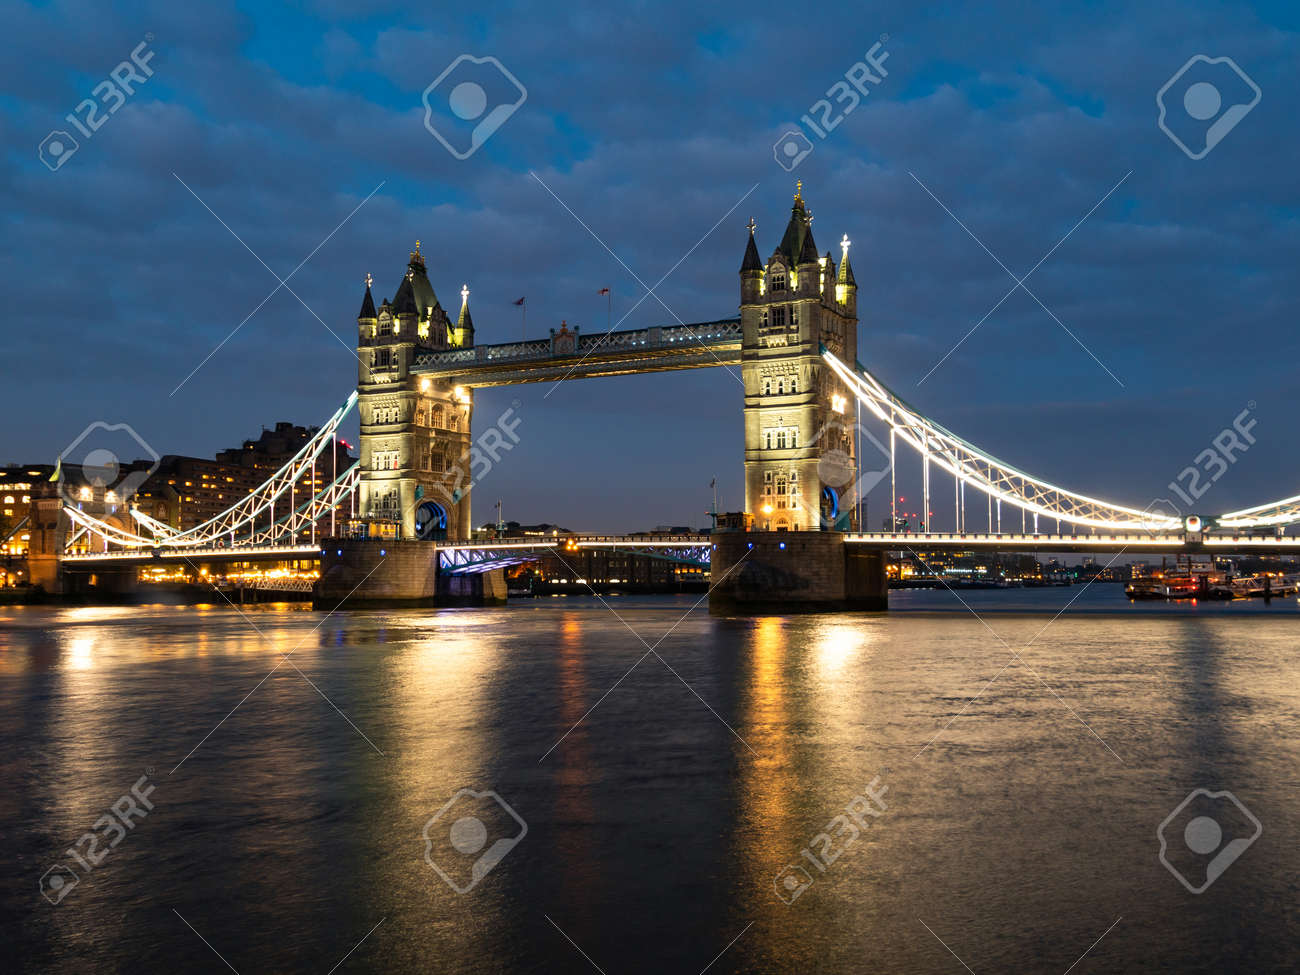 Tower Bridge at night illuminated by floodlights. Famous Tower Bridge in the evening with blue sky and reflex on water, London, England. Night cityscape with Tower Bridge, London, UK. - 132077374